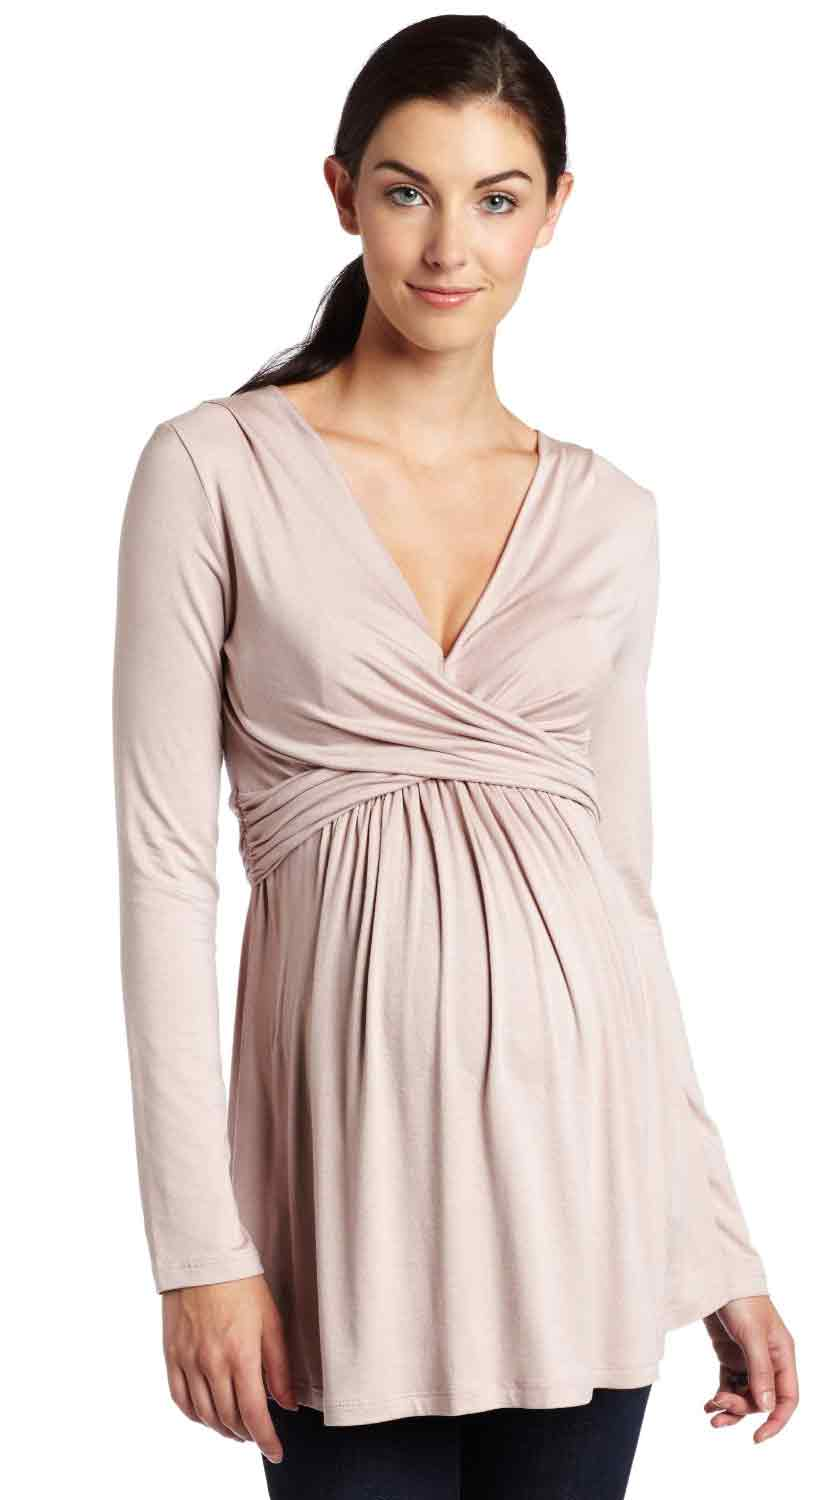 It is a huge relief to actually wear proper stylish maternity clothes!Stunning collection· Beautiful fabrics· Flawless fit.